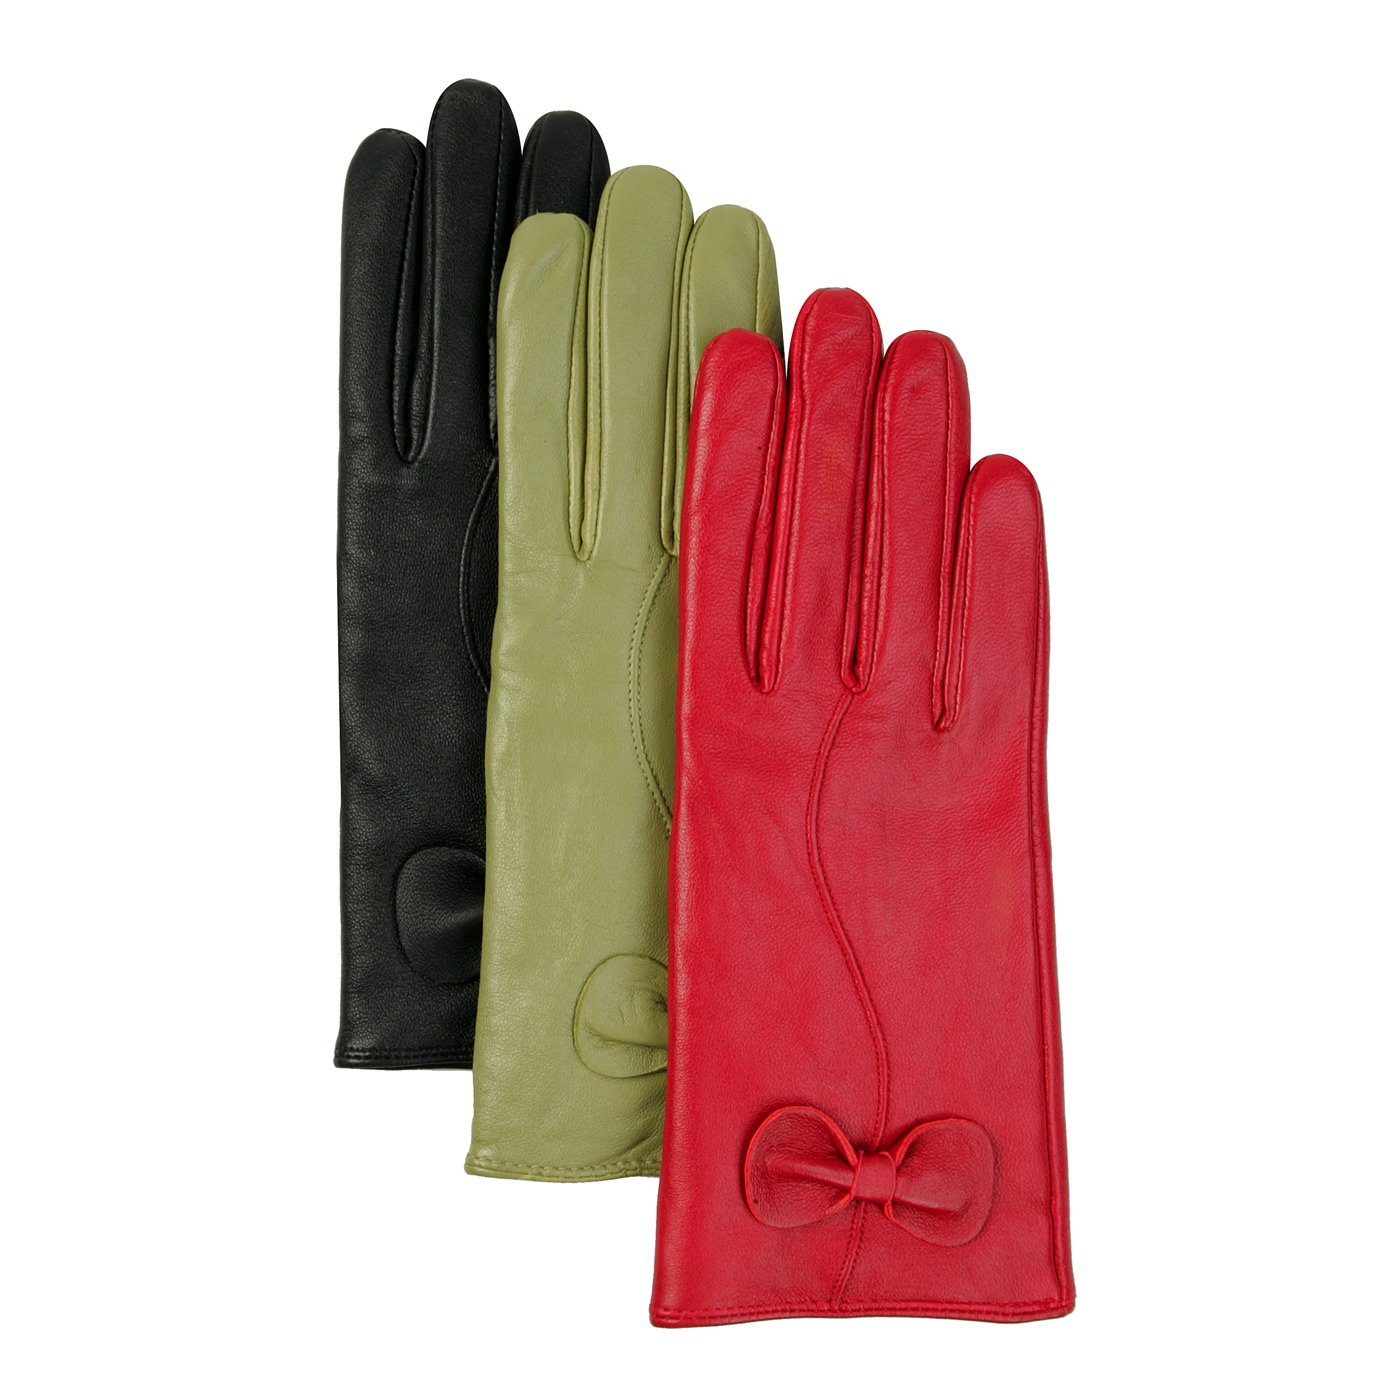 Luxury Lane Women's Cashmere Lined Lambskin Leather Gloves with Bow - Green Small